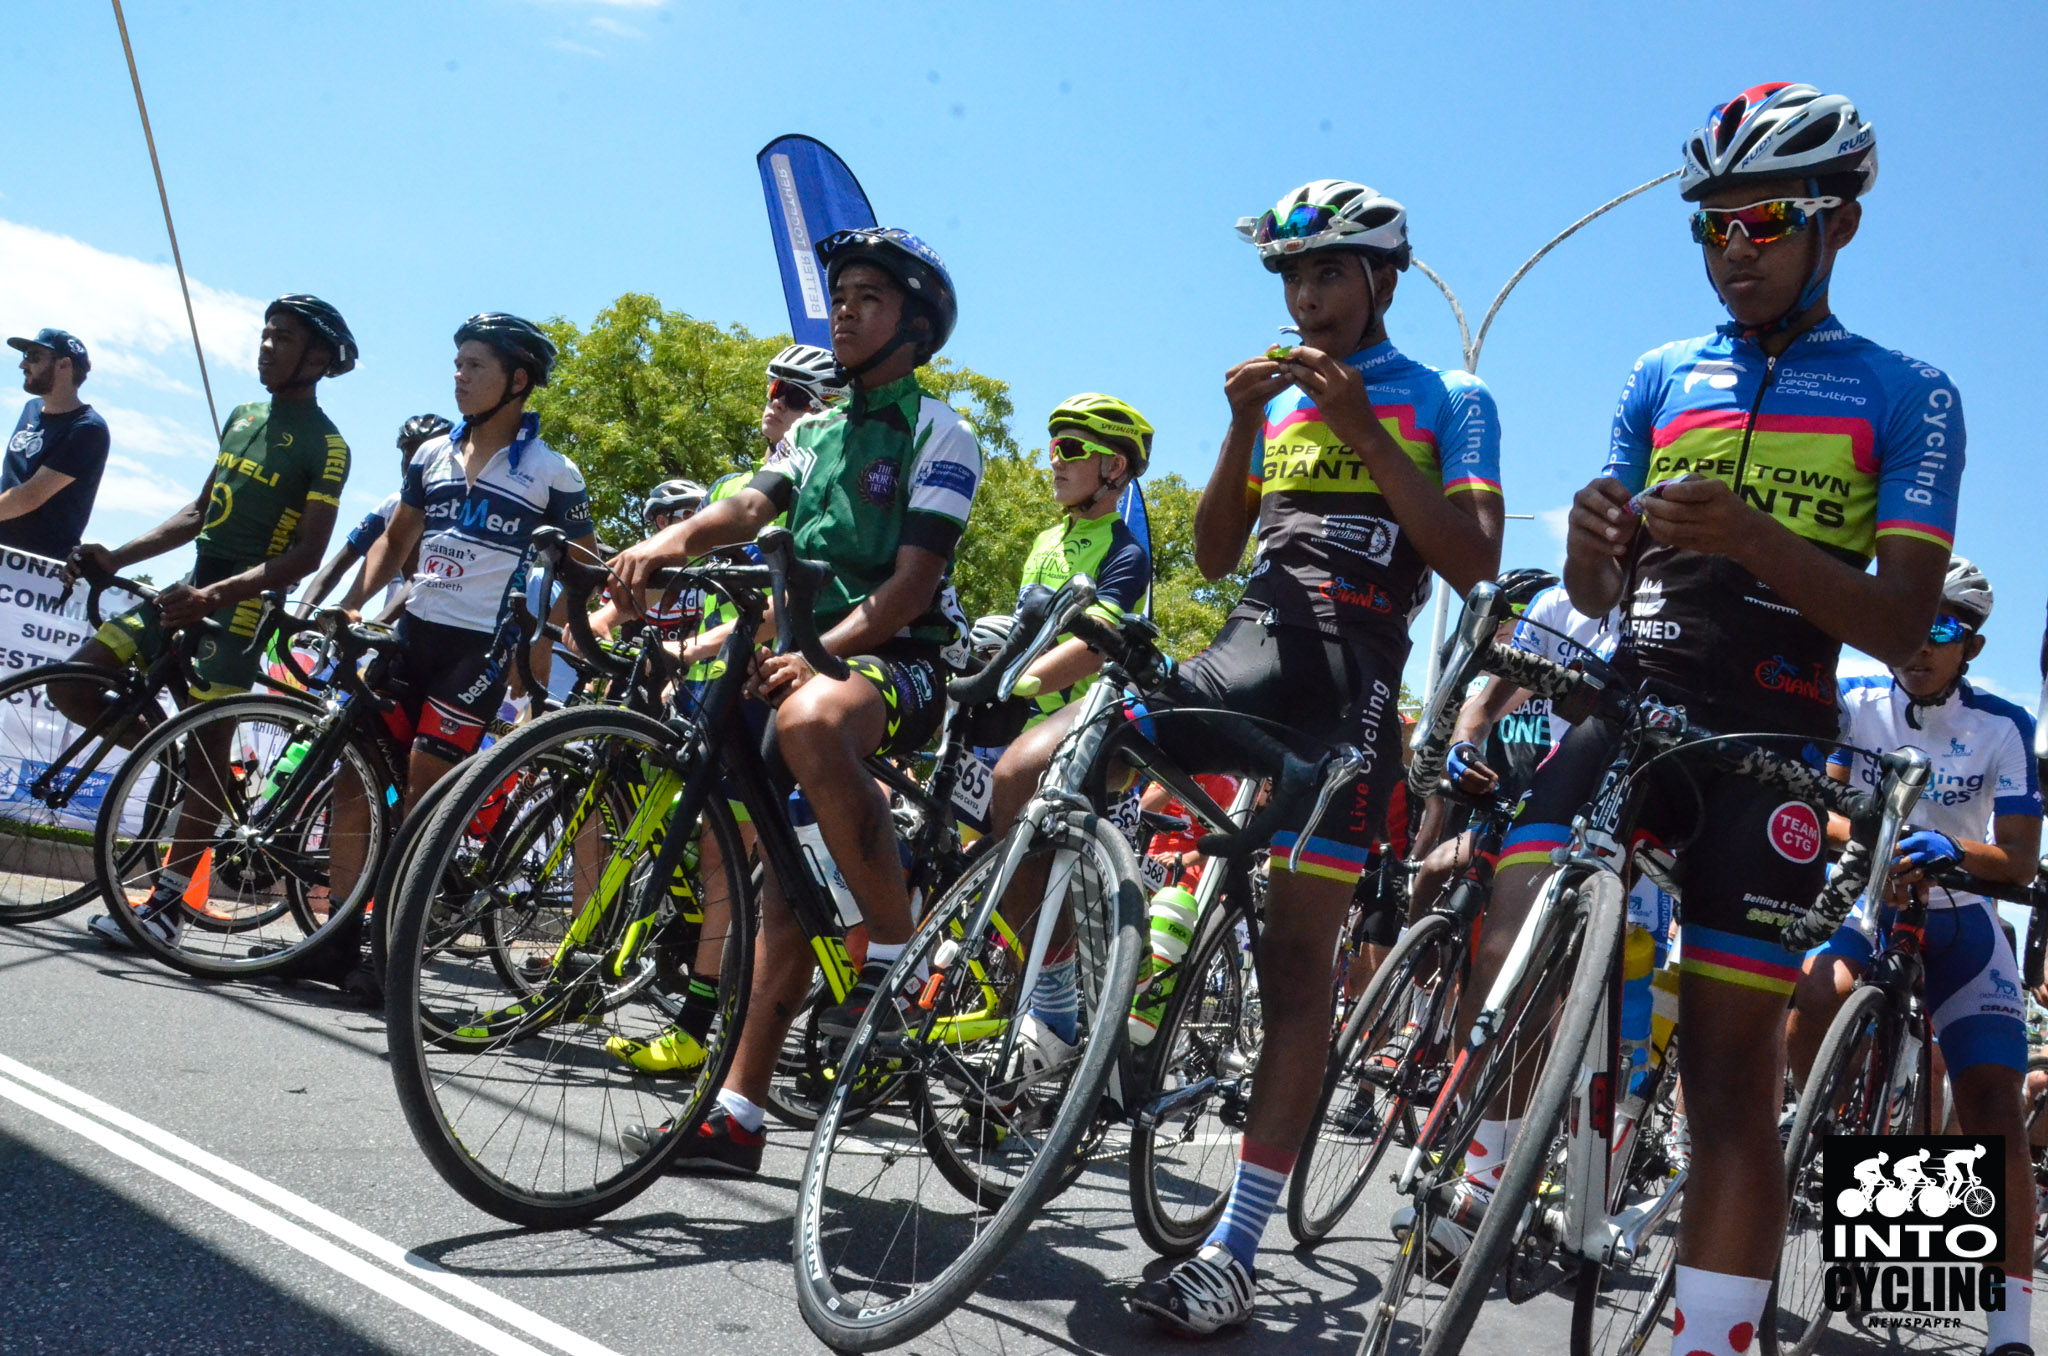 Riders eagerly await the start gun in the Youth class' Boys race at the 2018 SA National Road and Para-cycling Championships, which took place in the streets of Oudtshoorn from 6-11 February. 📷 www.intocycling.co.za